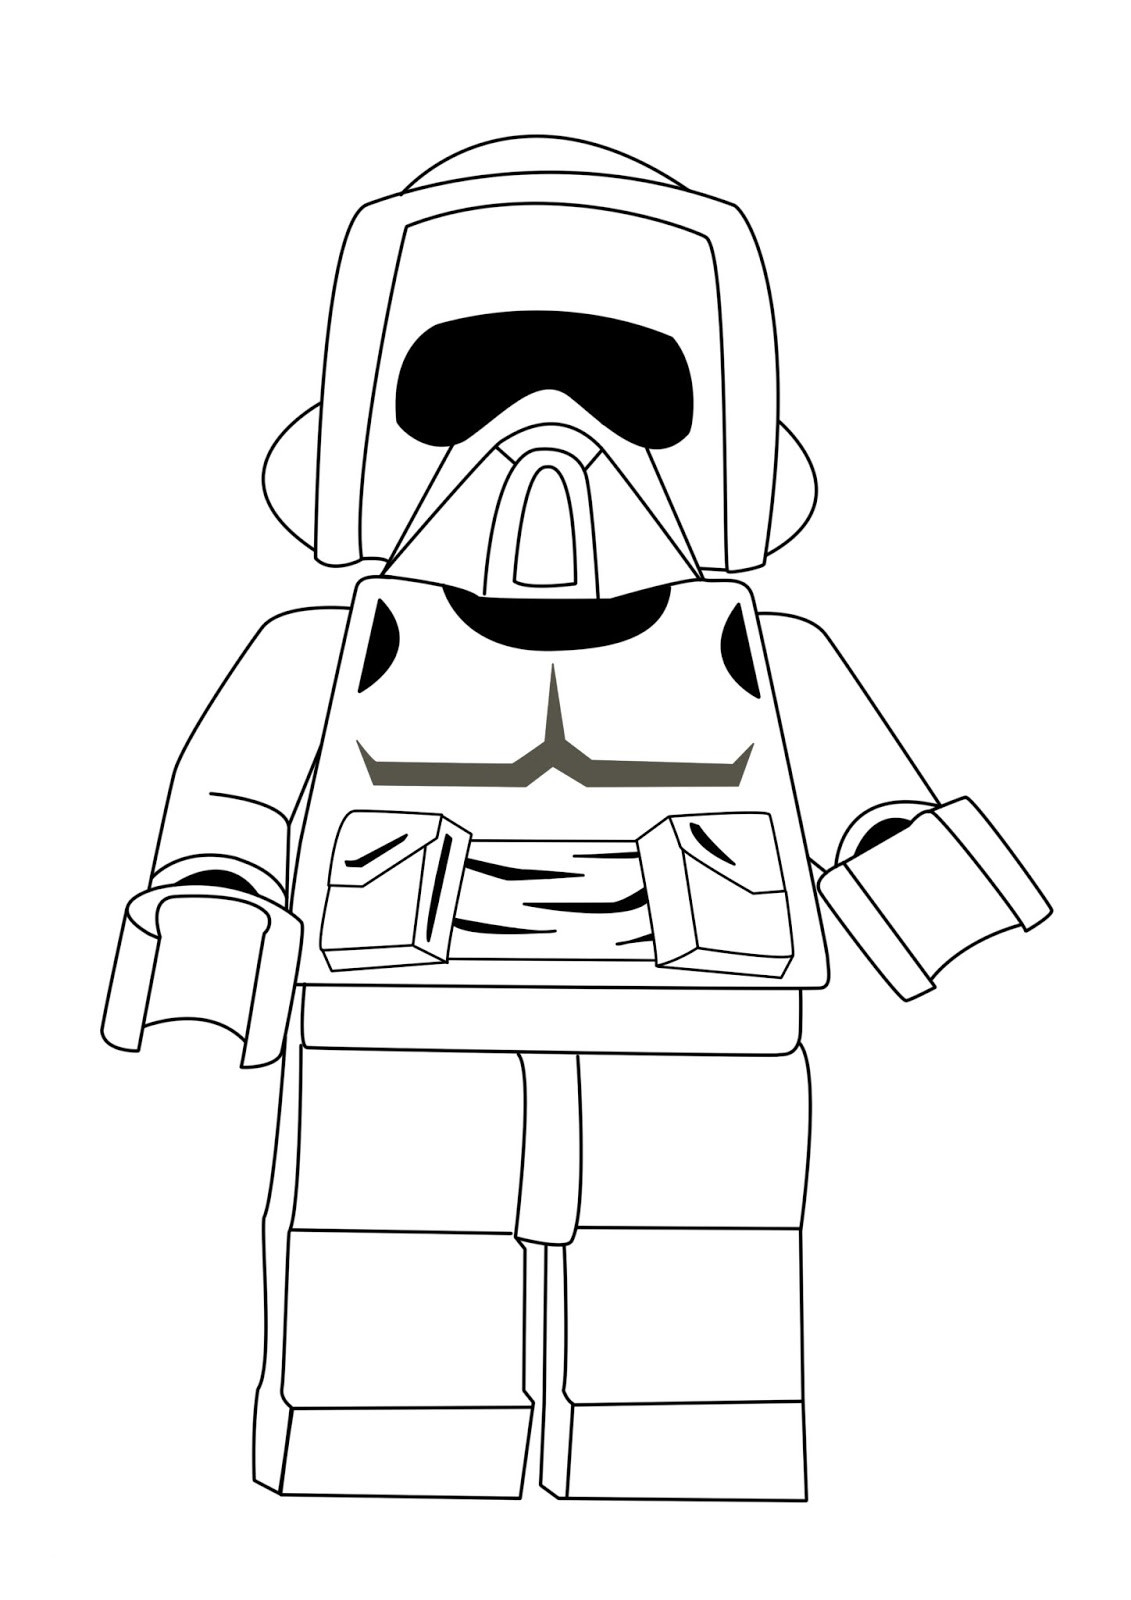 Lego Star Wars Coloring Pages To Print  Lego Star Wars Coloring Pages Best Coloring Pages For Kids